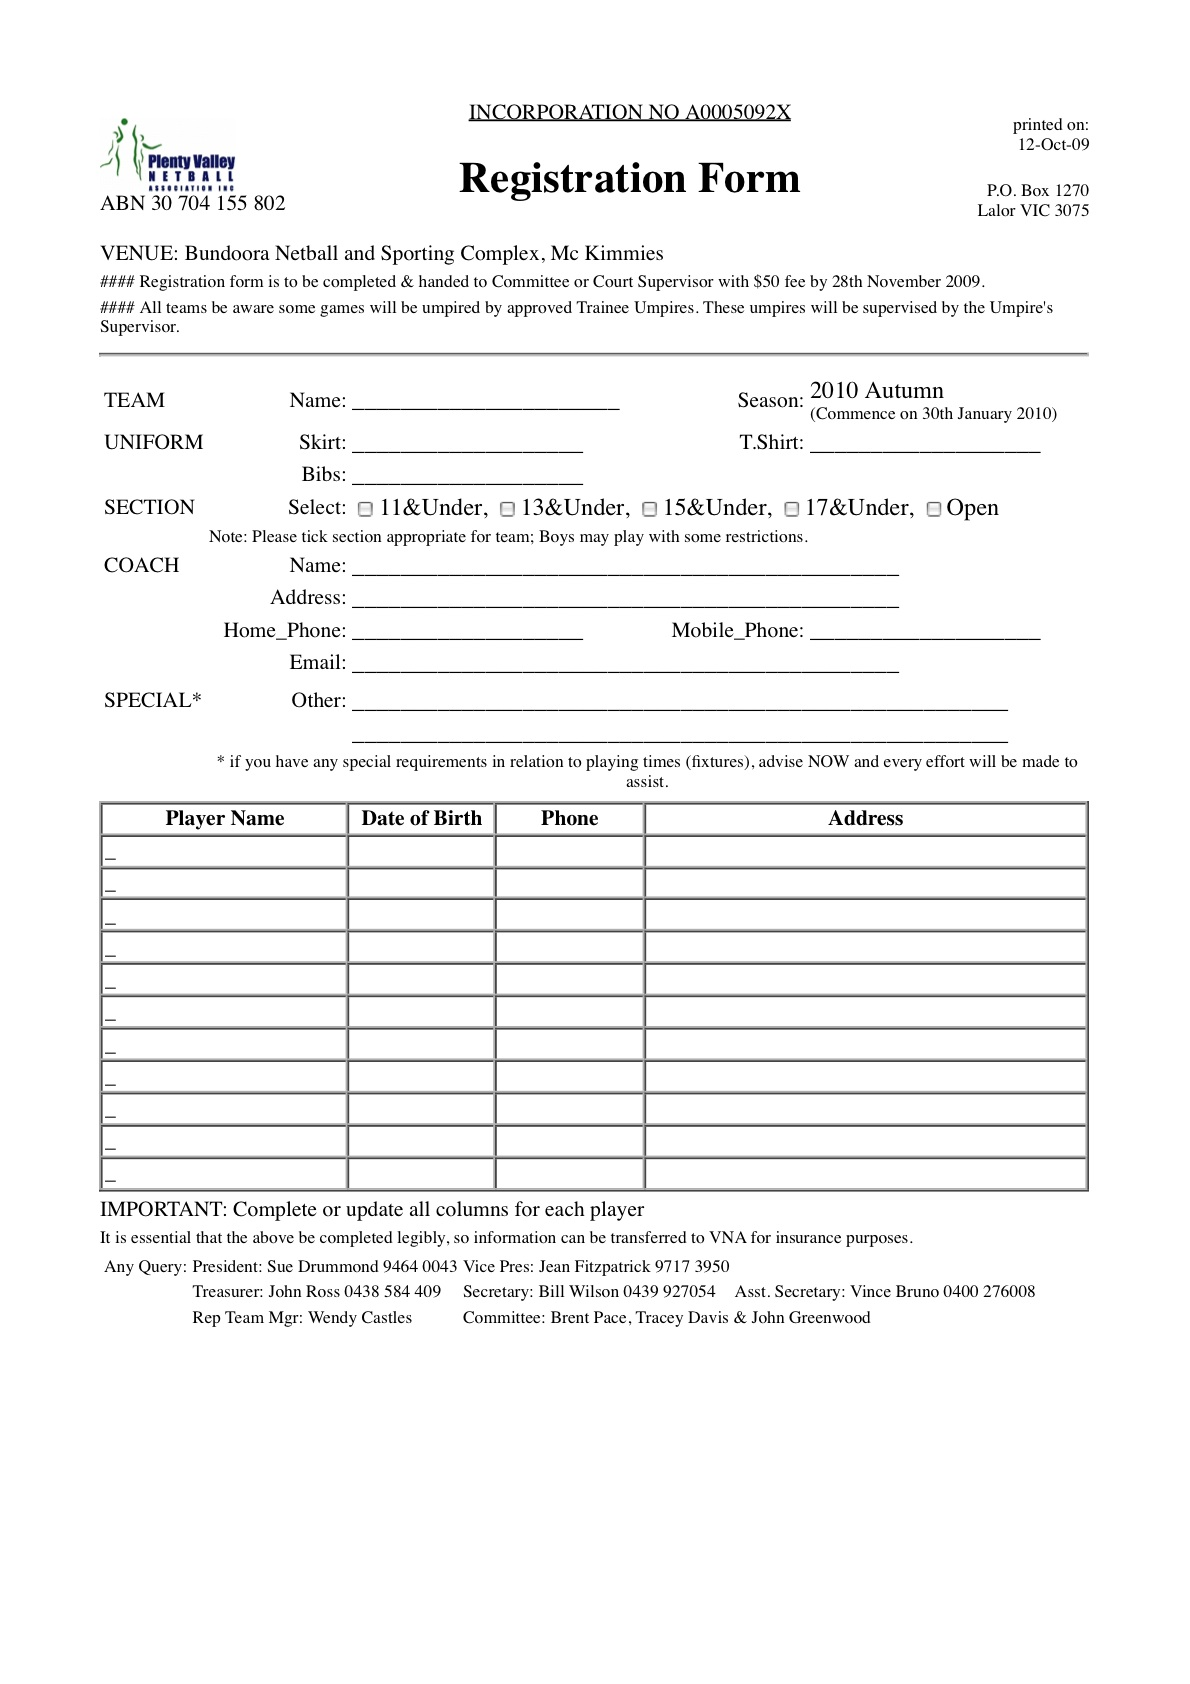 blank patient registration form template – Club Membership Form Template Word